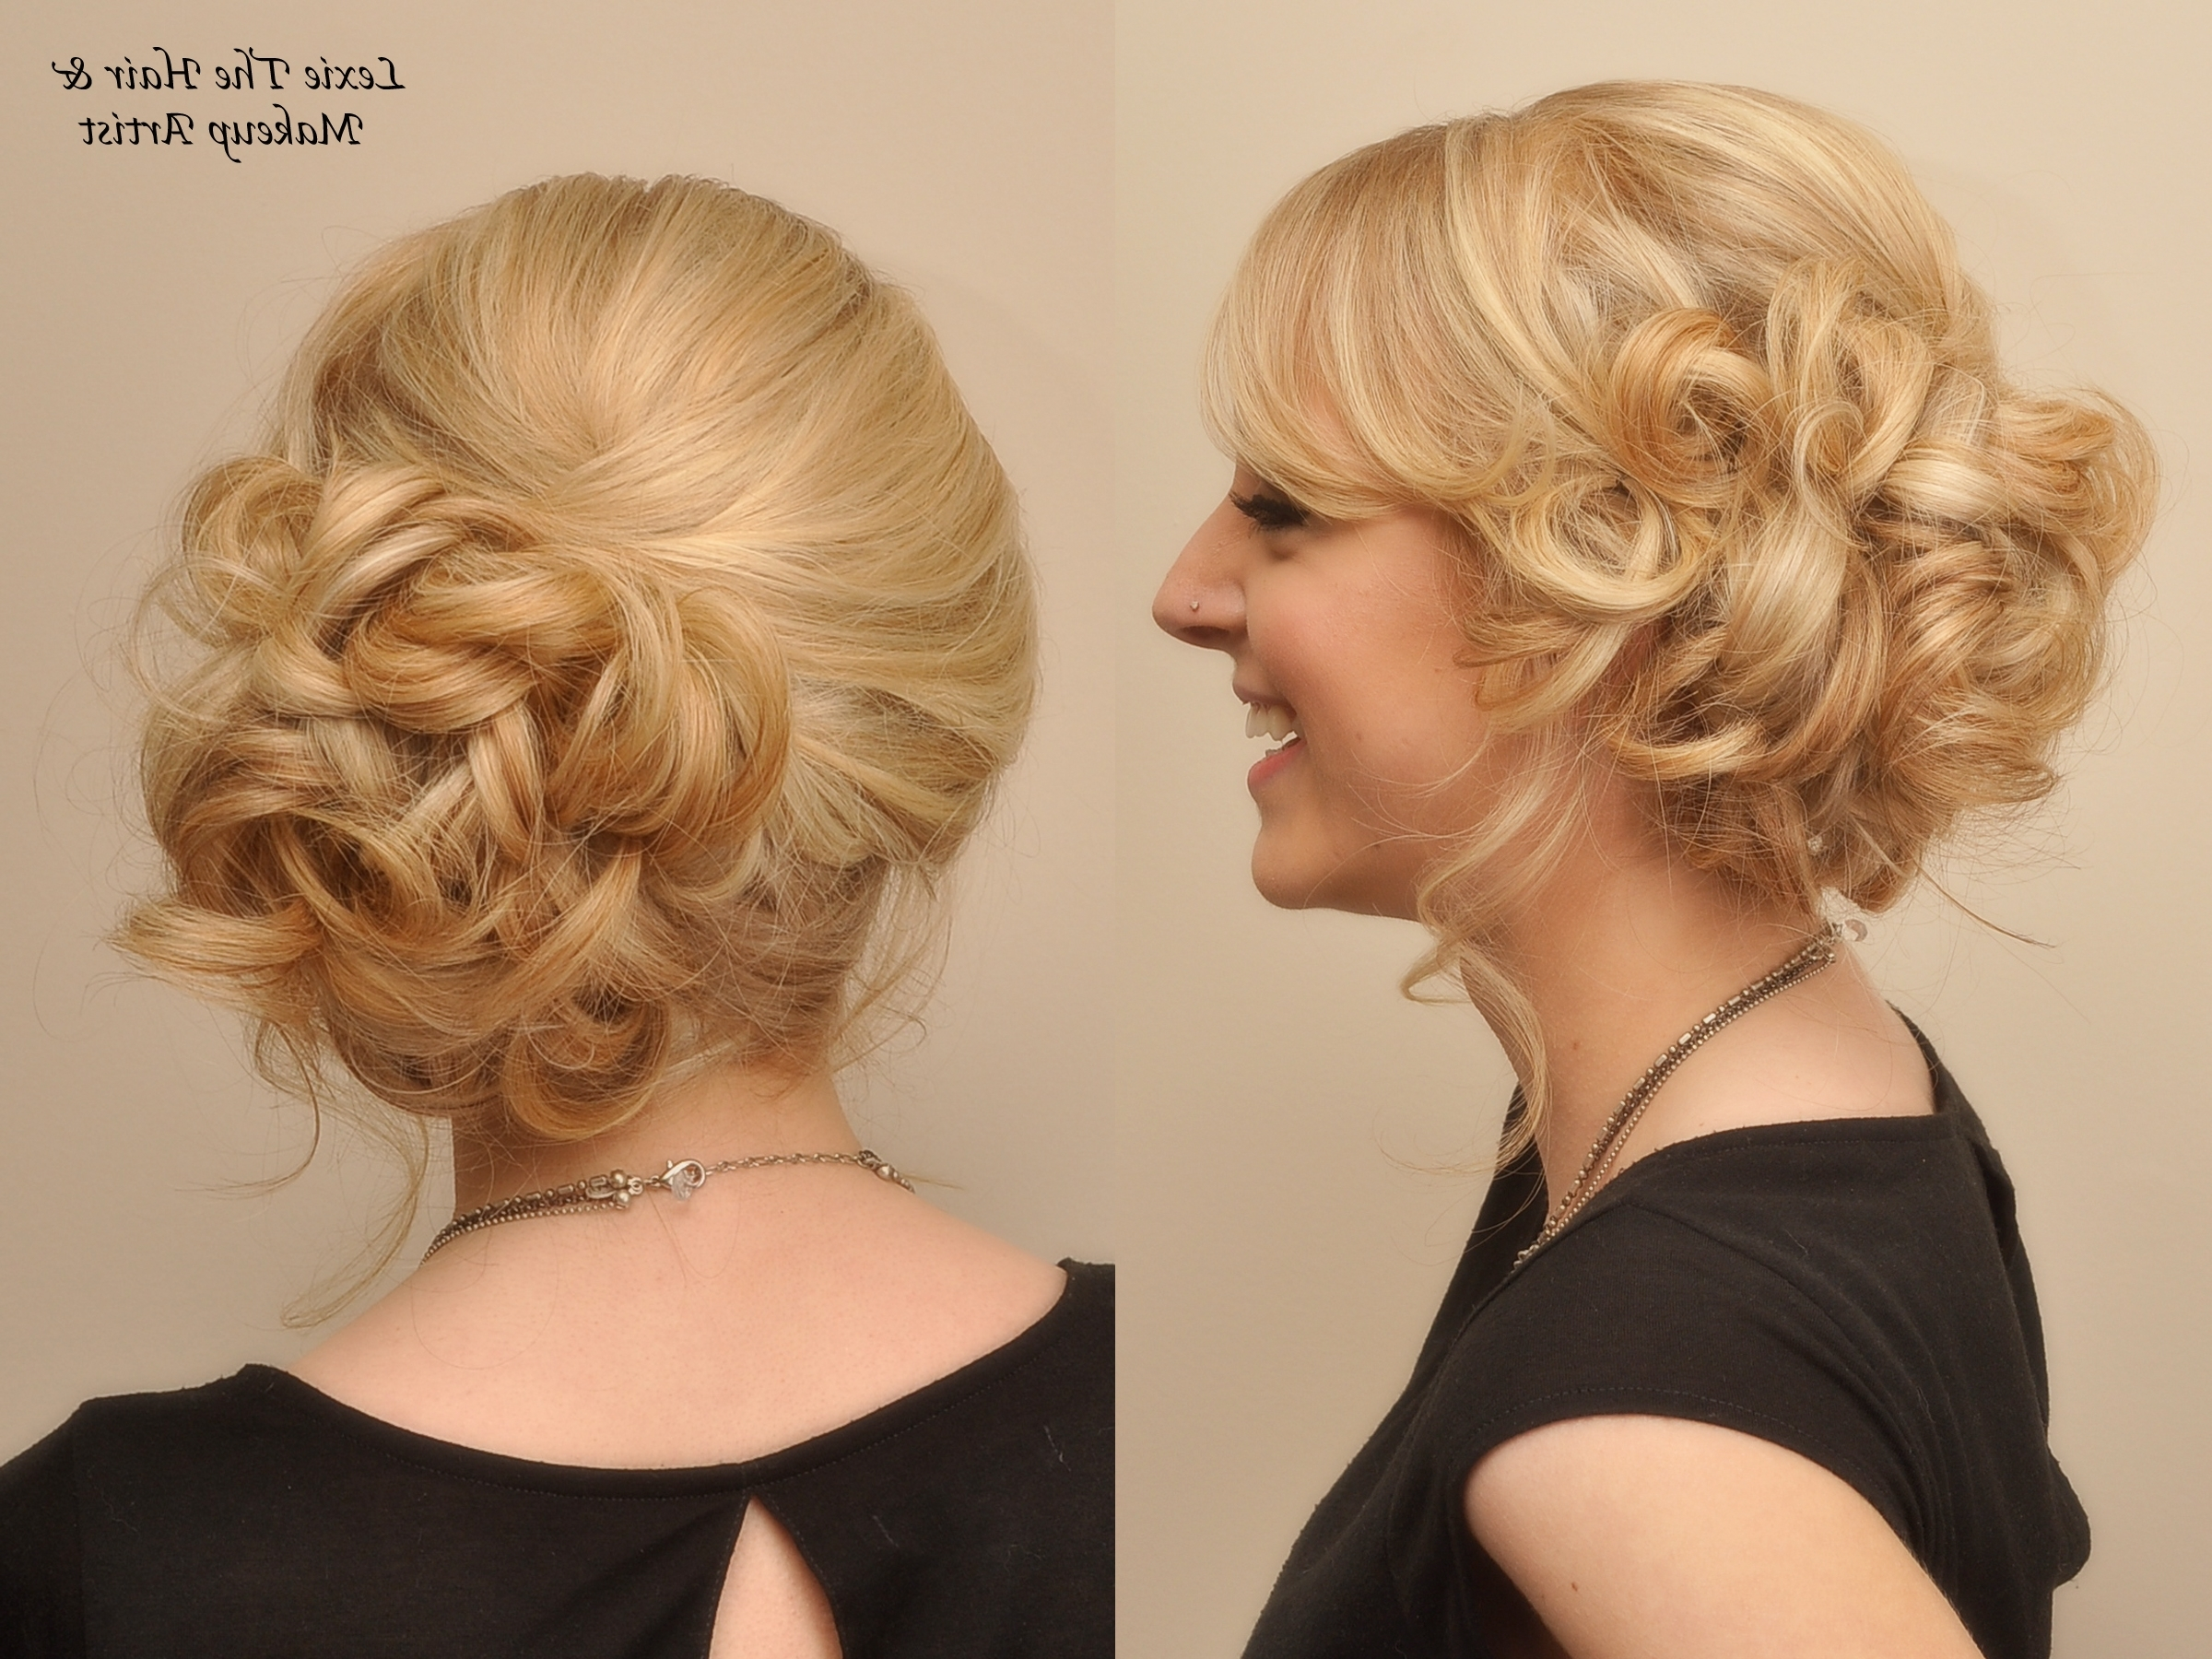 Alluring Side Buns Hairstyles For Weddings With Side Bun Updo Google Intended For Side Updo Hairstyles (View 4 of 15)